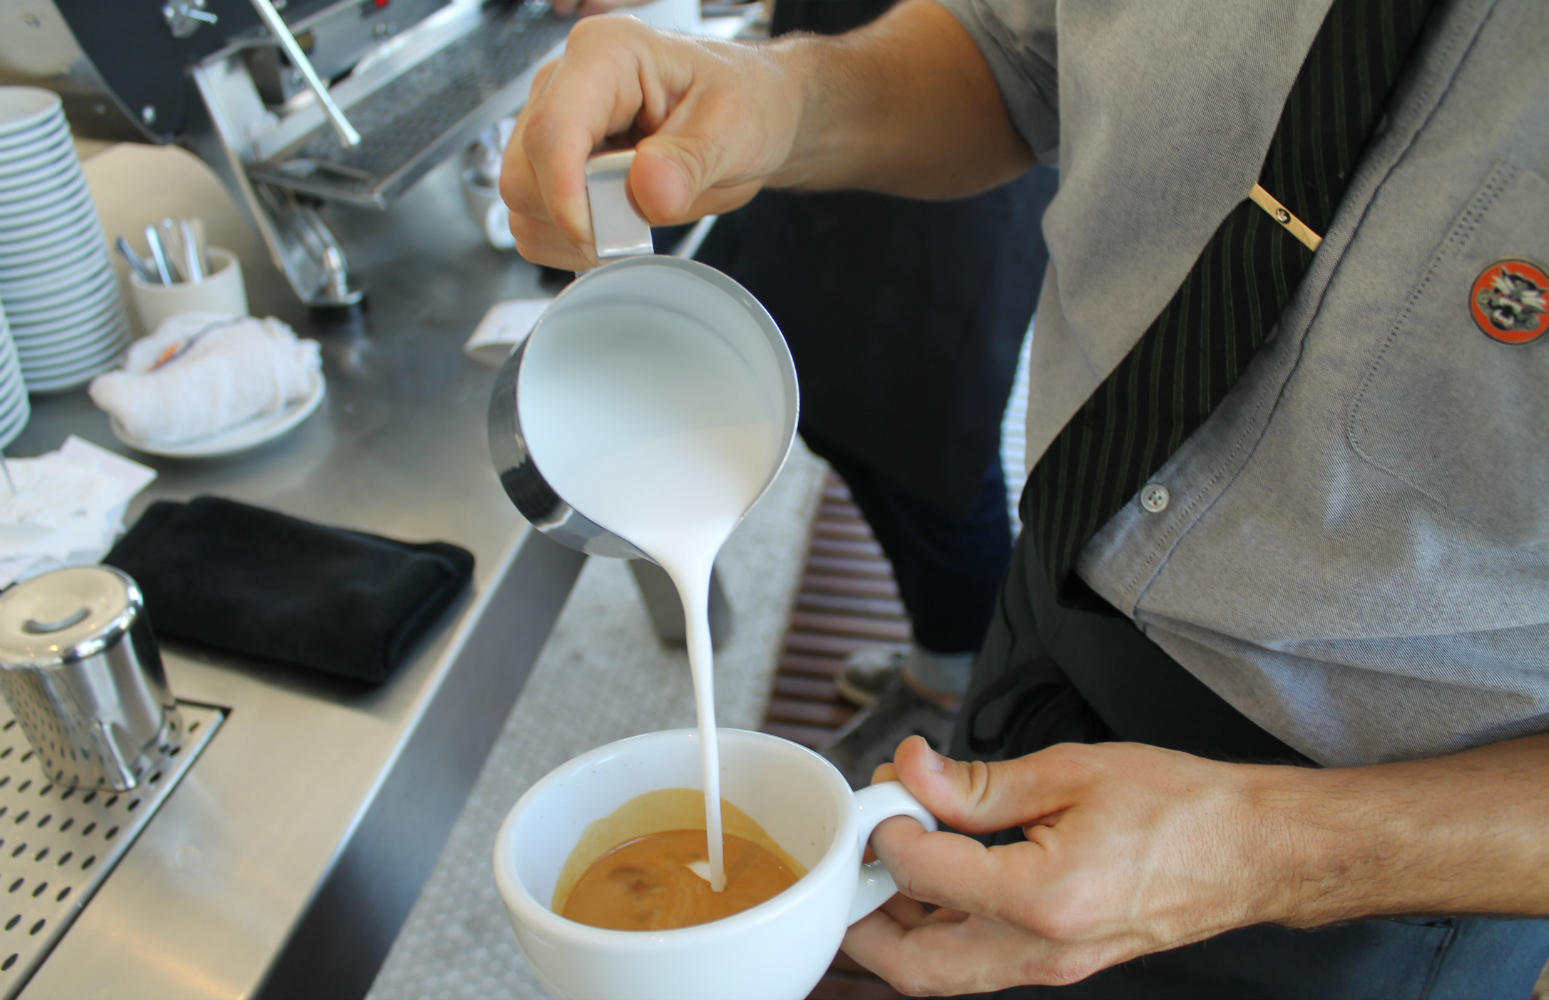 The right kind of dairy plays an important role in making espresso drinks Photo: Shelby Pope